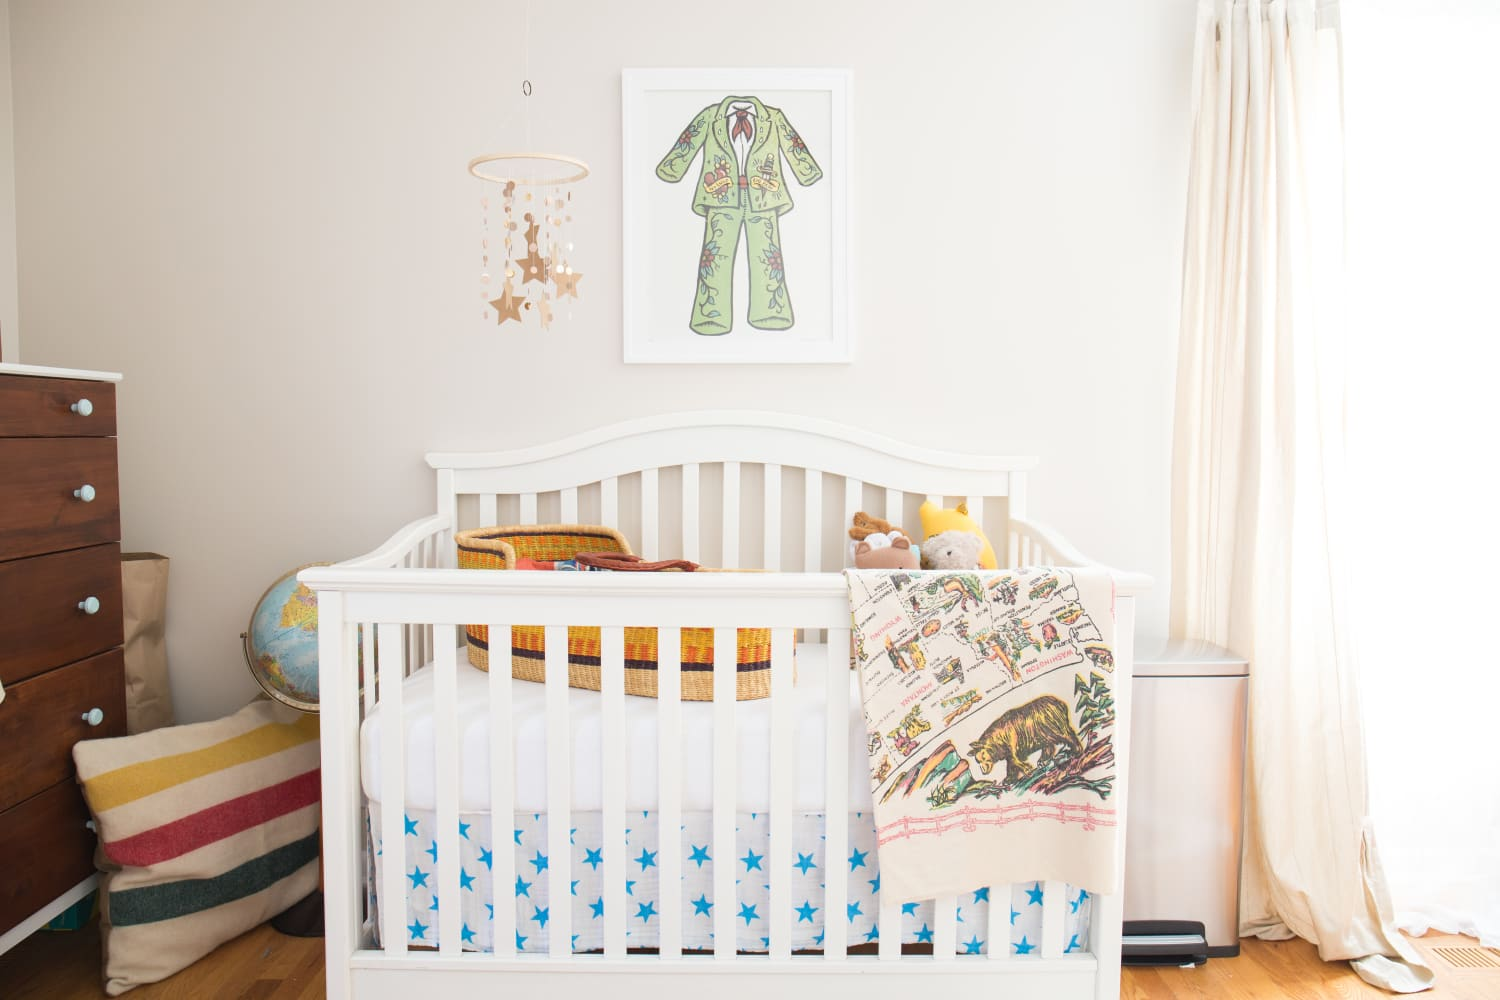 15 Adorable Baby Room Ideas to Inspire Your Home Nursery